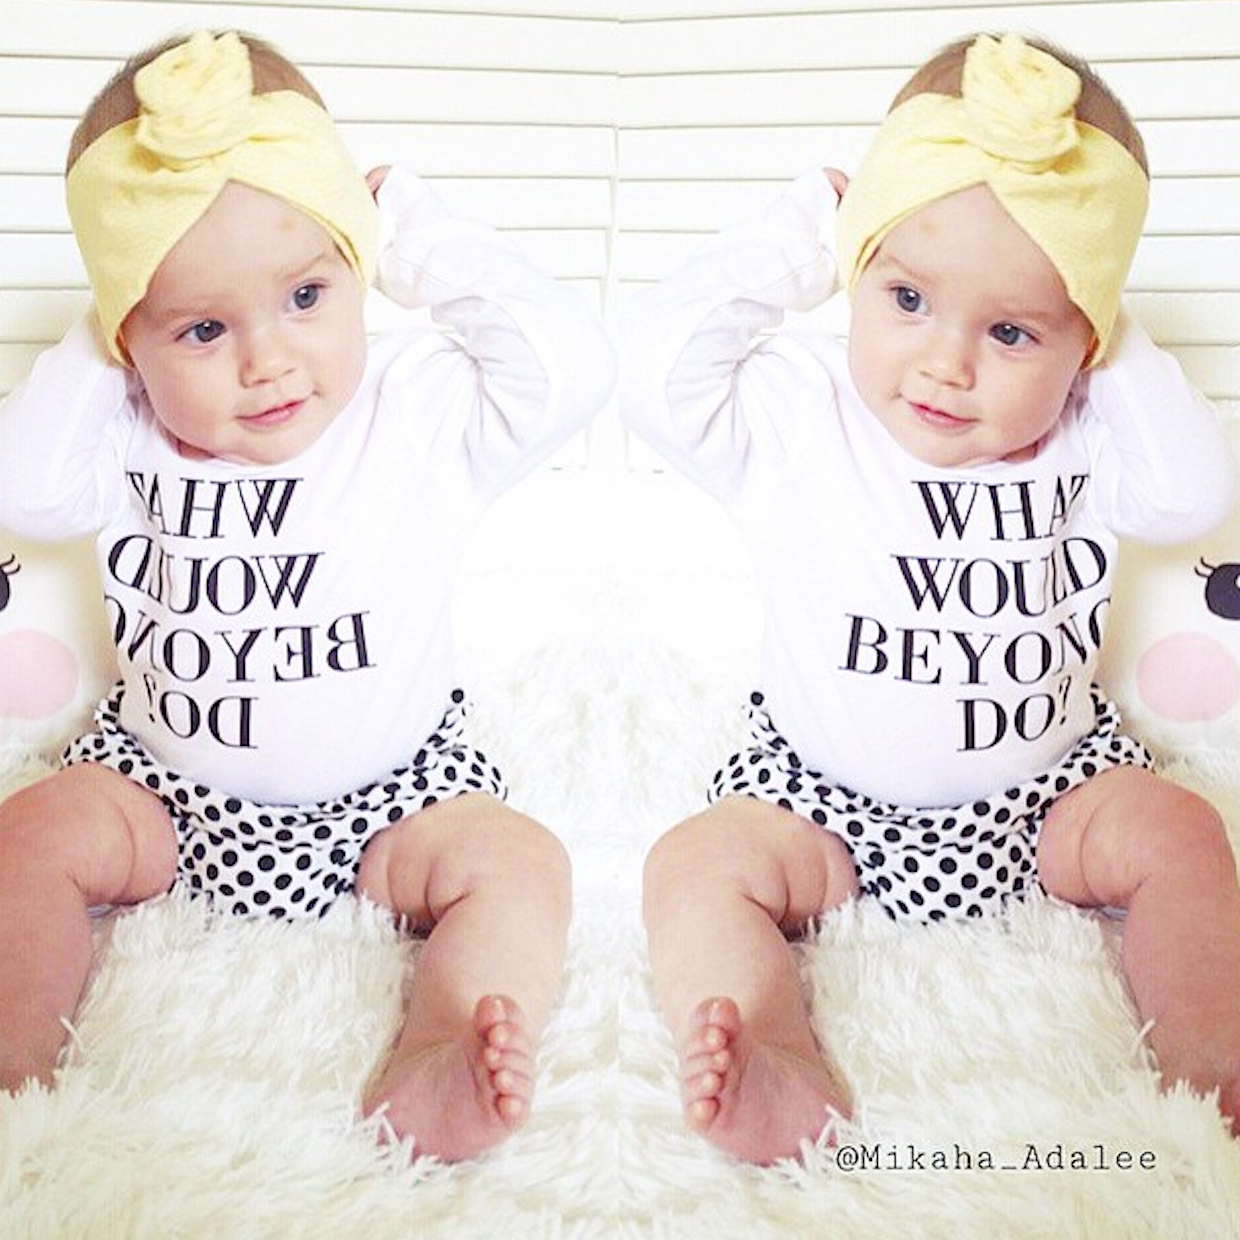 What would Beyonce do? long sleeve onesie